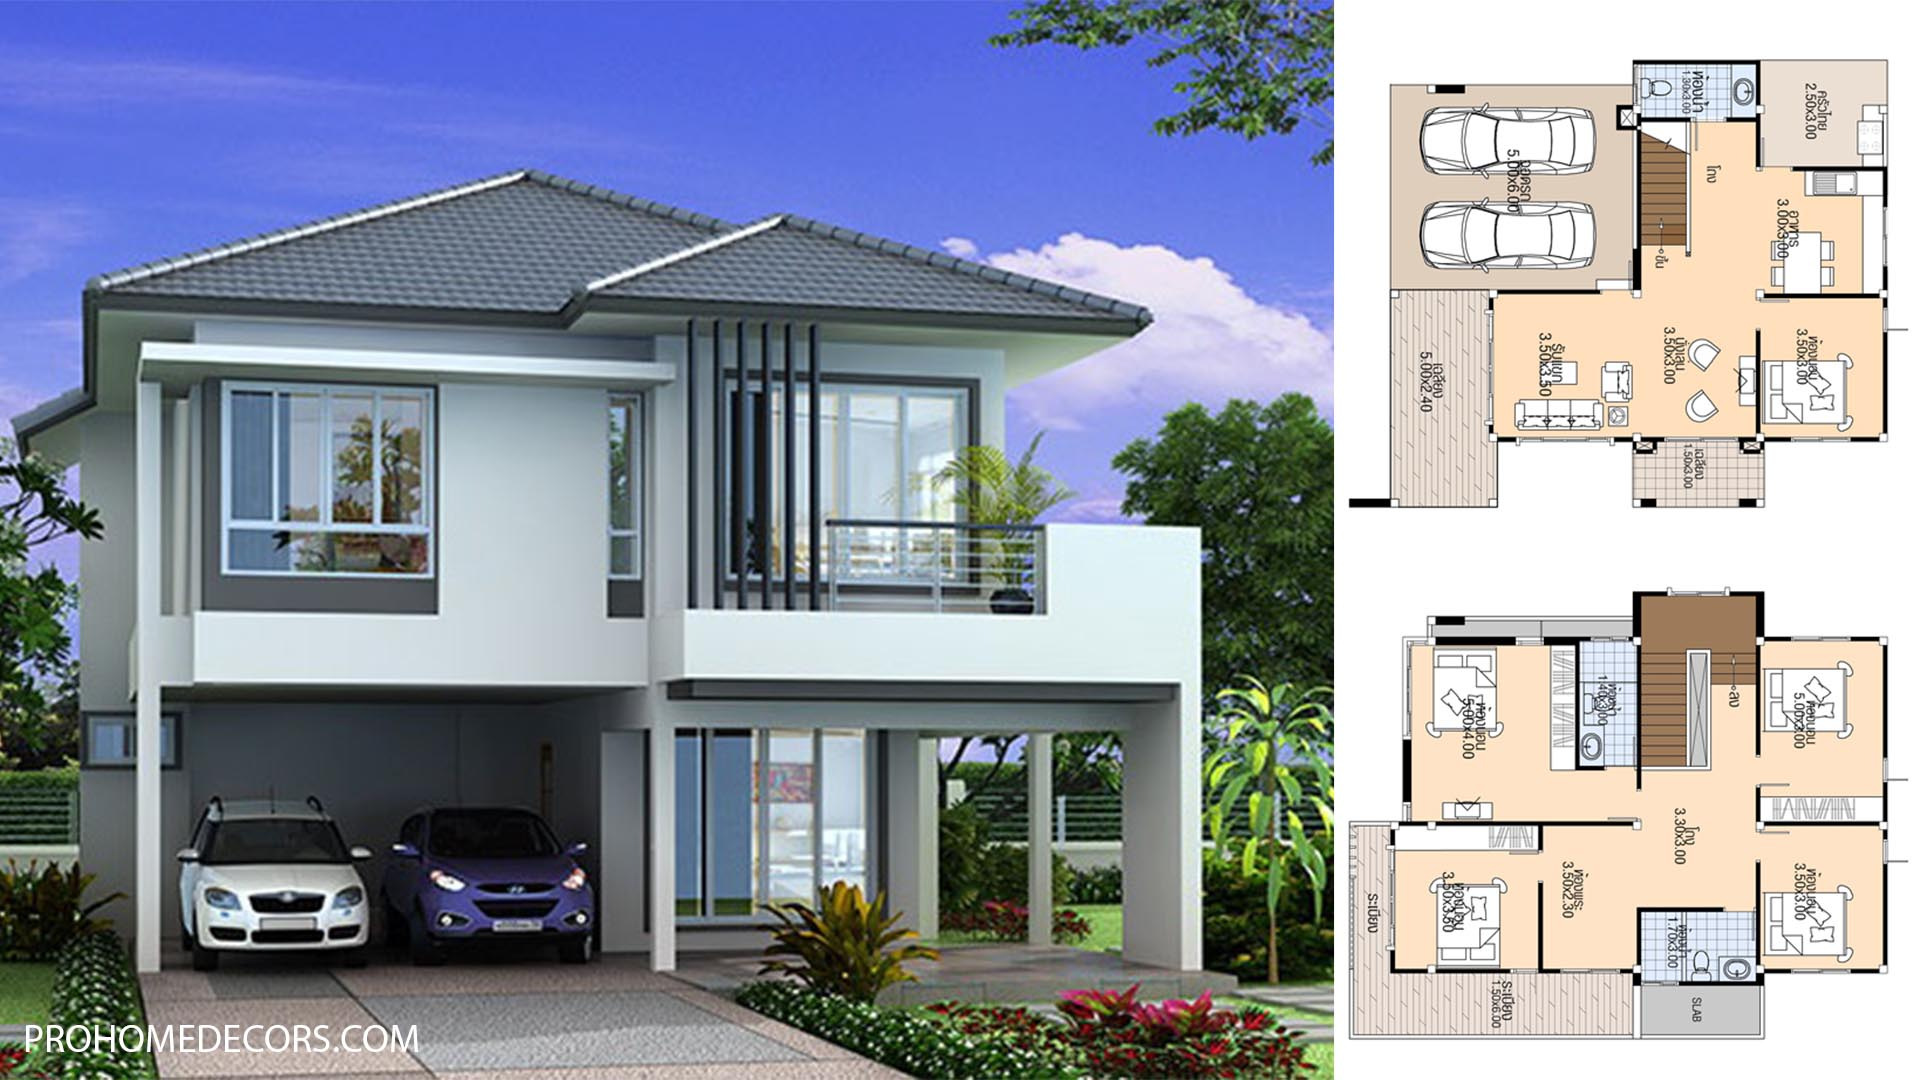 House plans 10×11.8 with 5 Beds